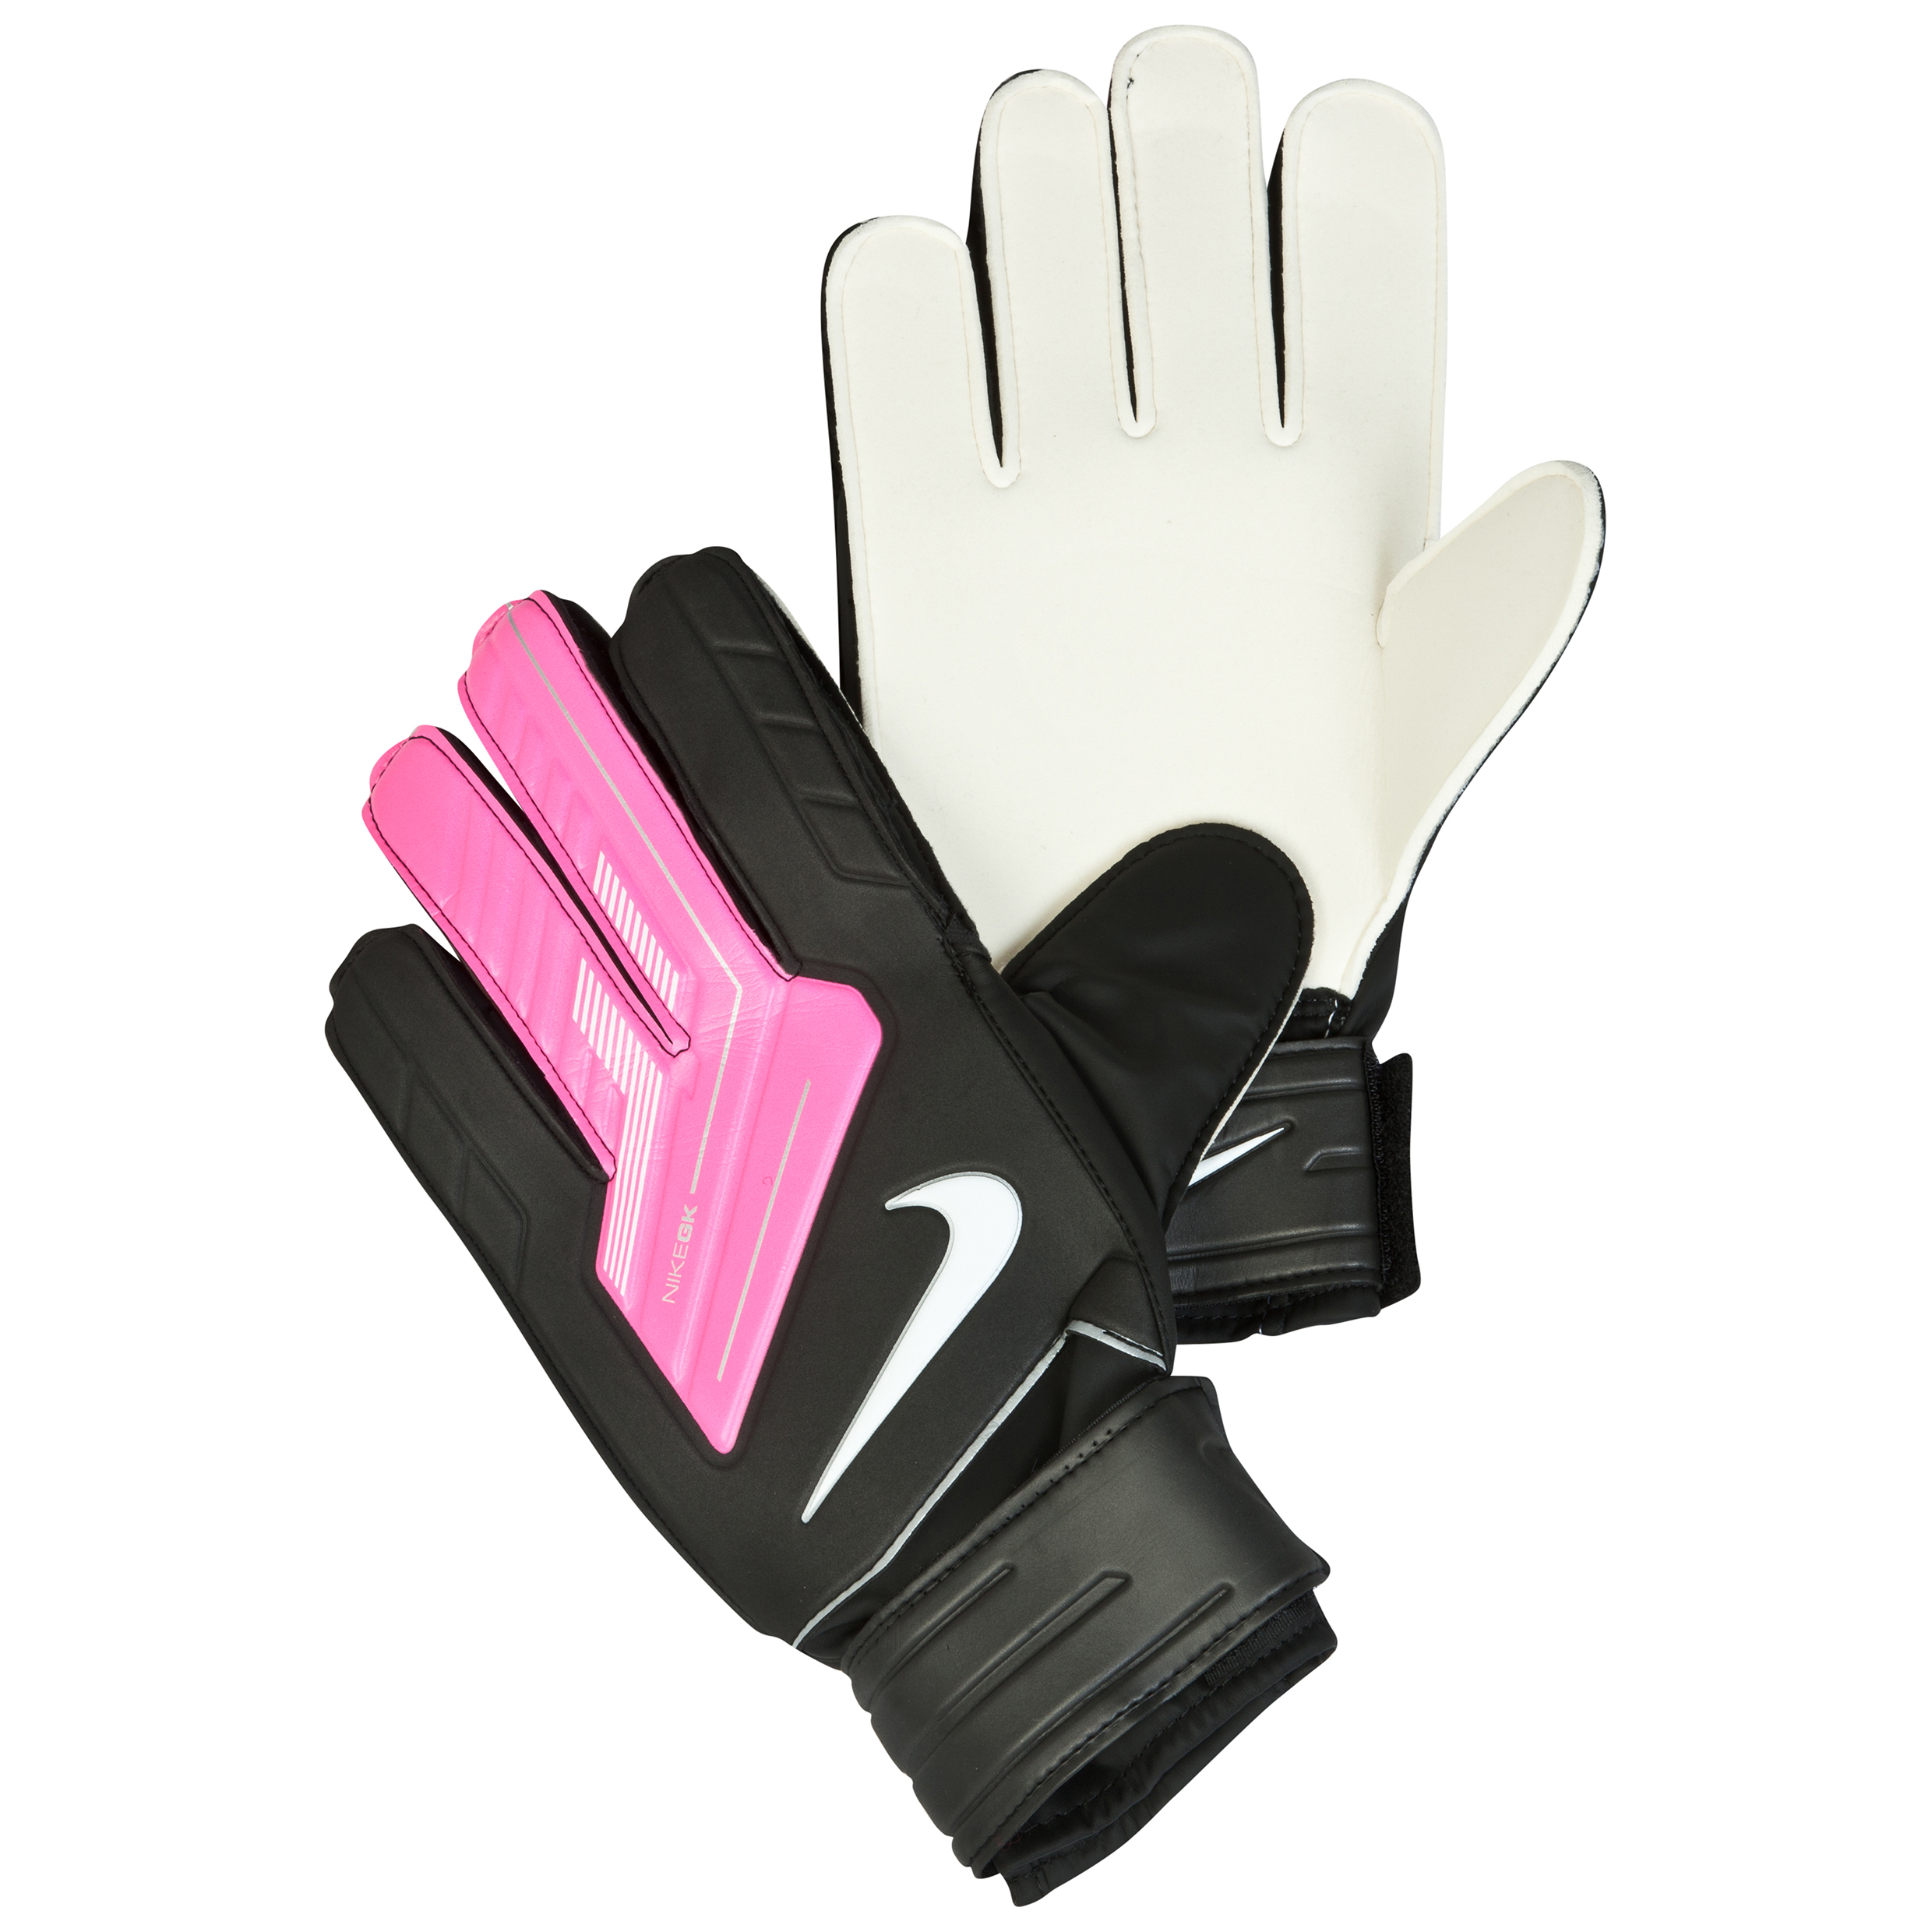 Nike Match Goalkeeper Gloves - Black/Pink Flash/(White)